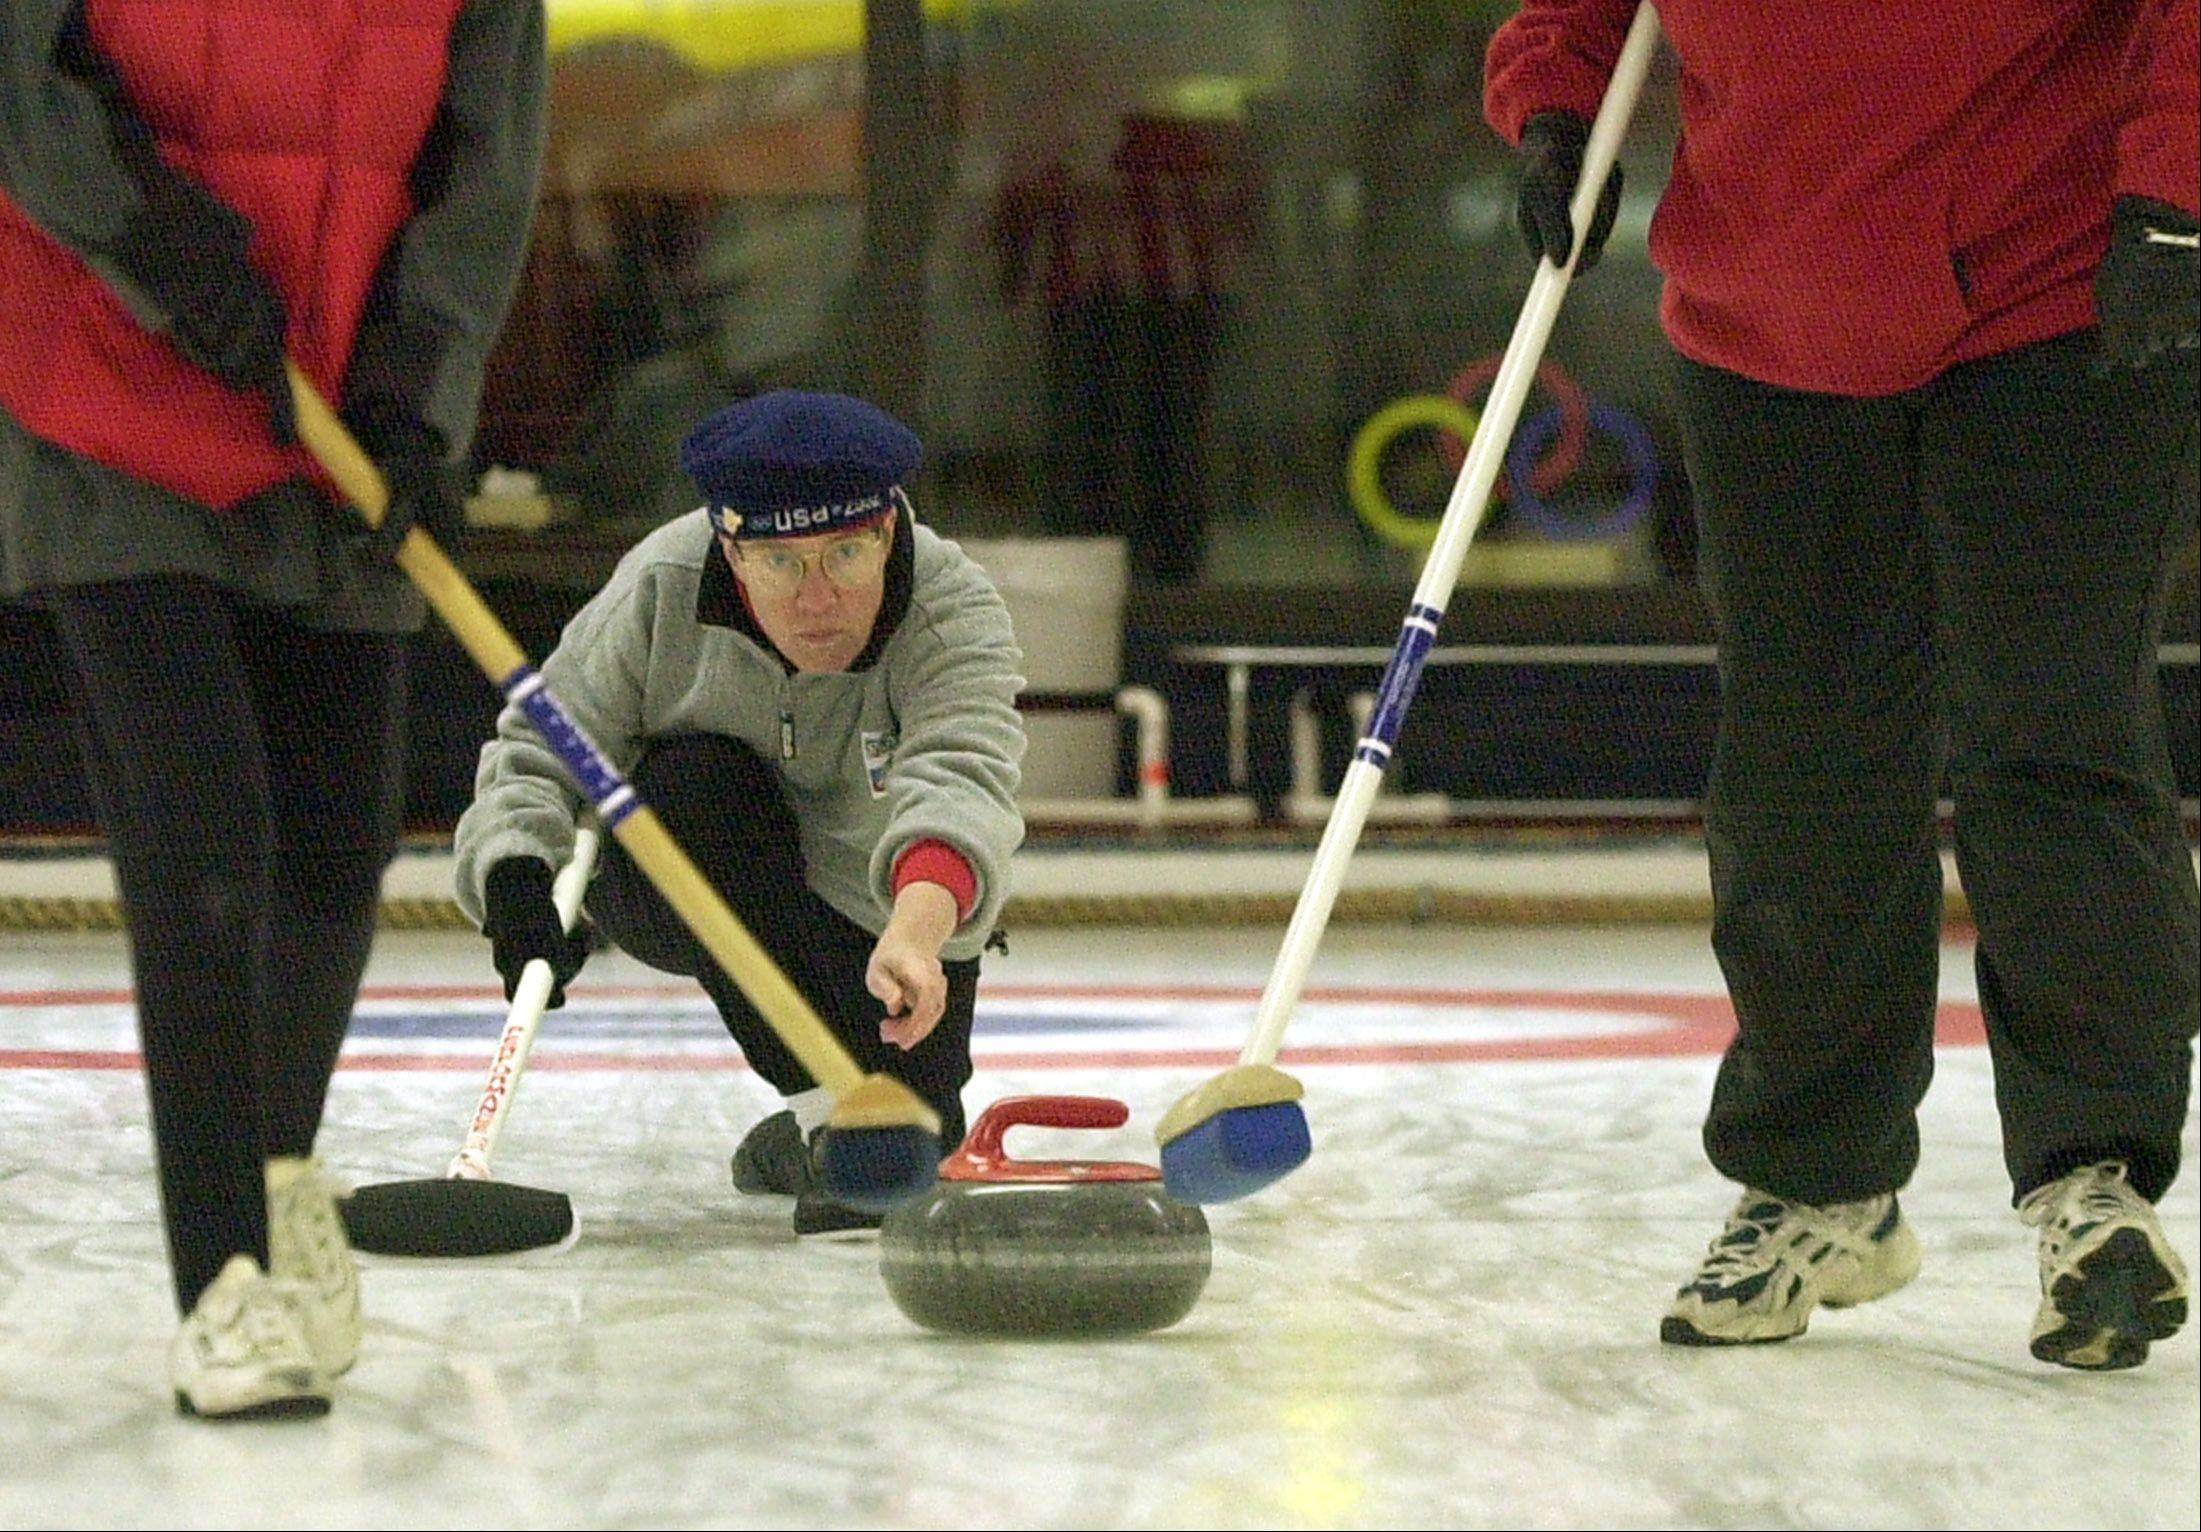 The Chicago Curling Club offers introductory classes for those wanting to learn the Olympic sport.